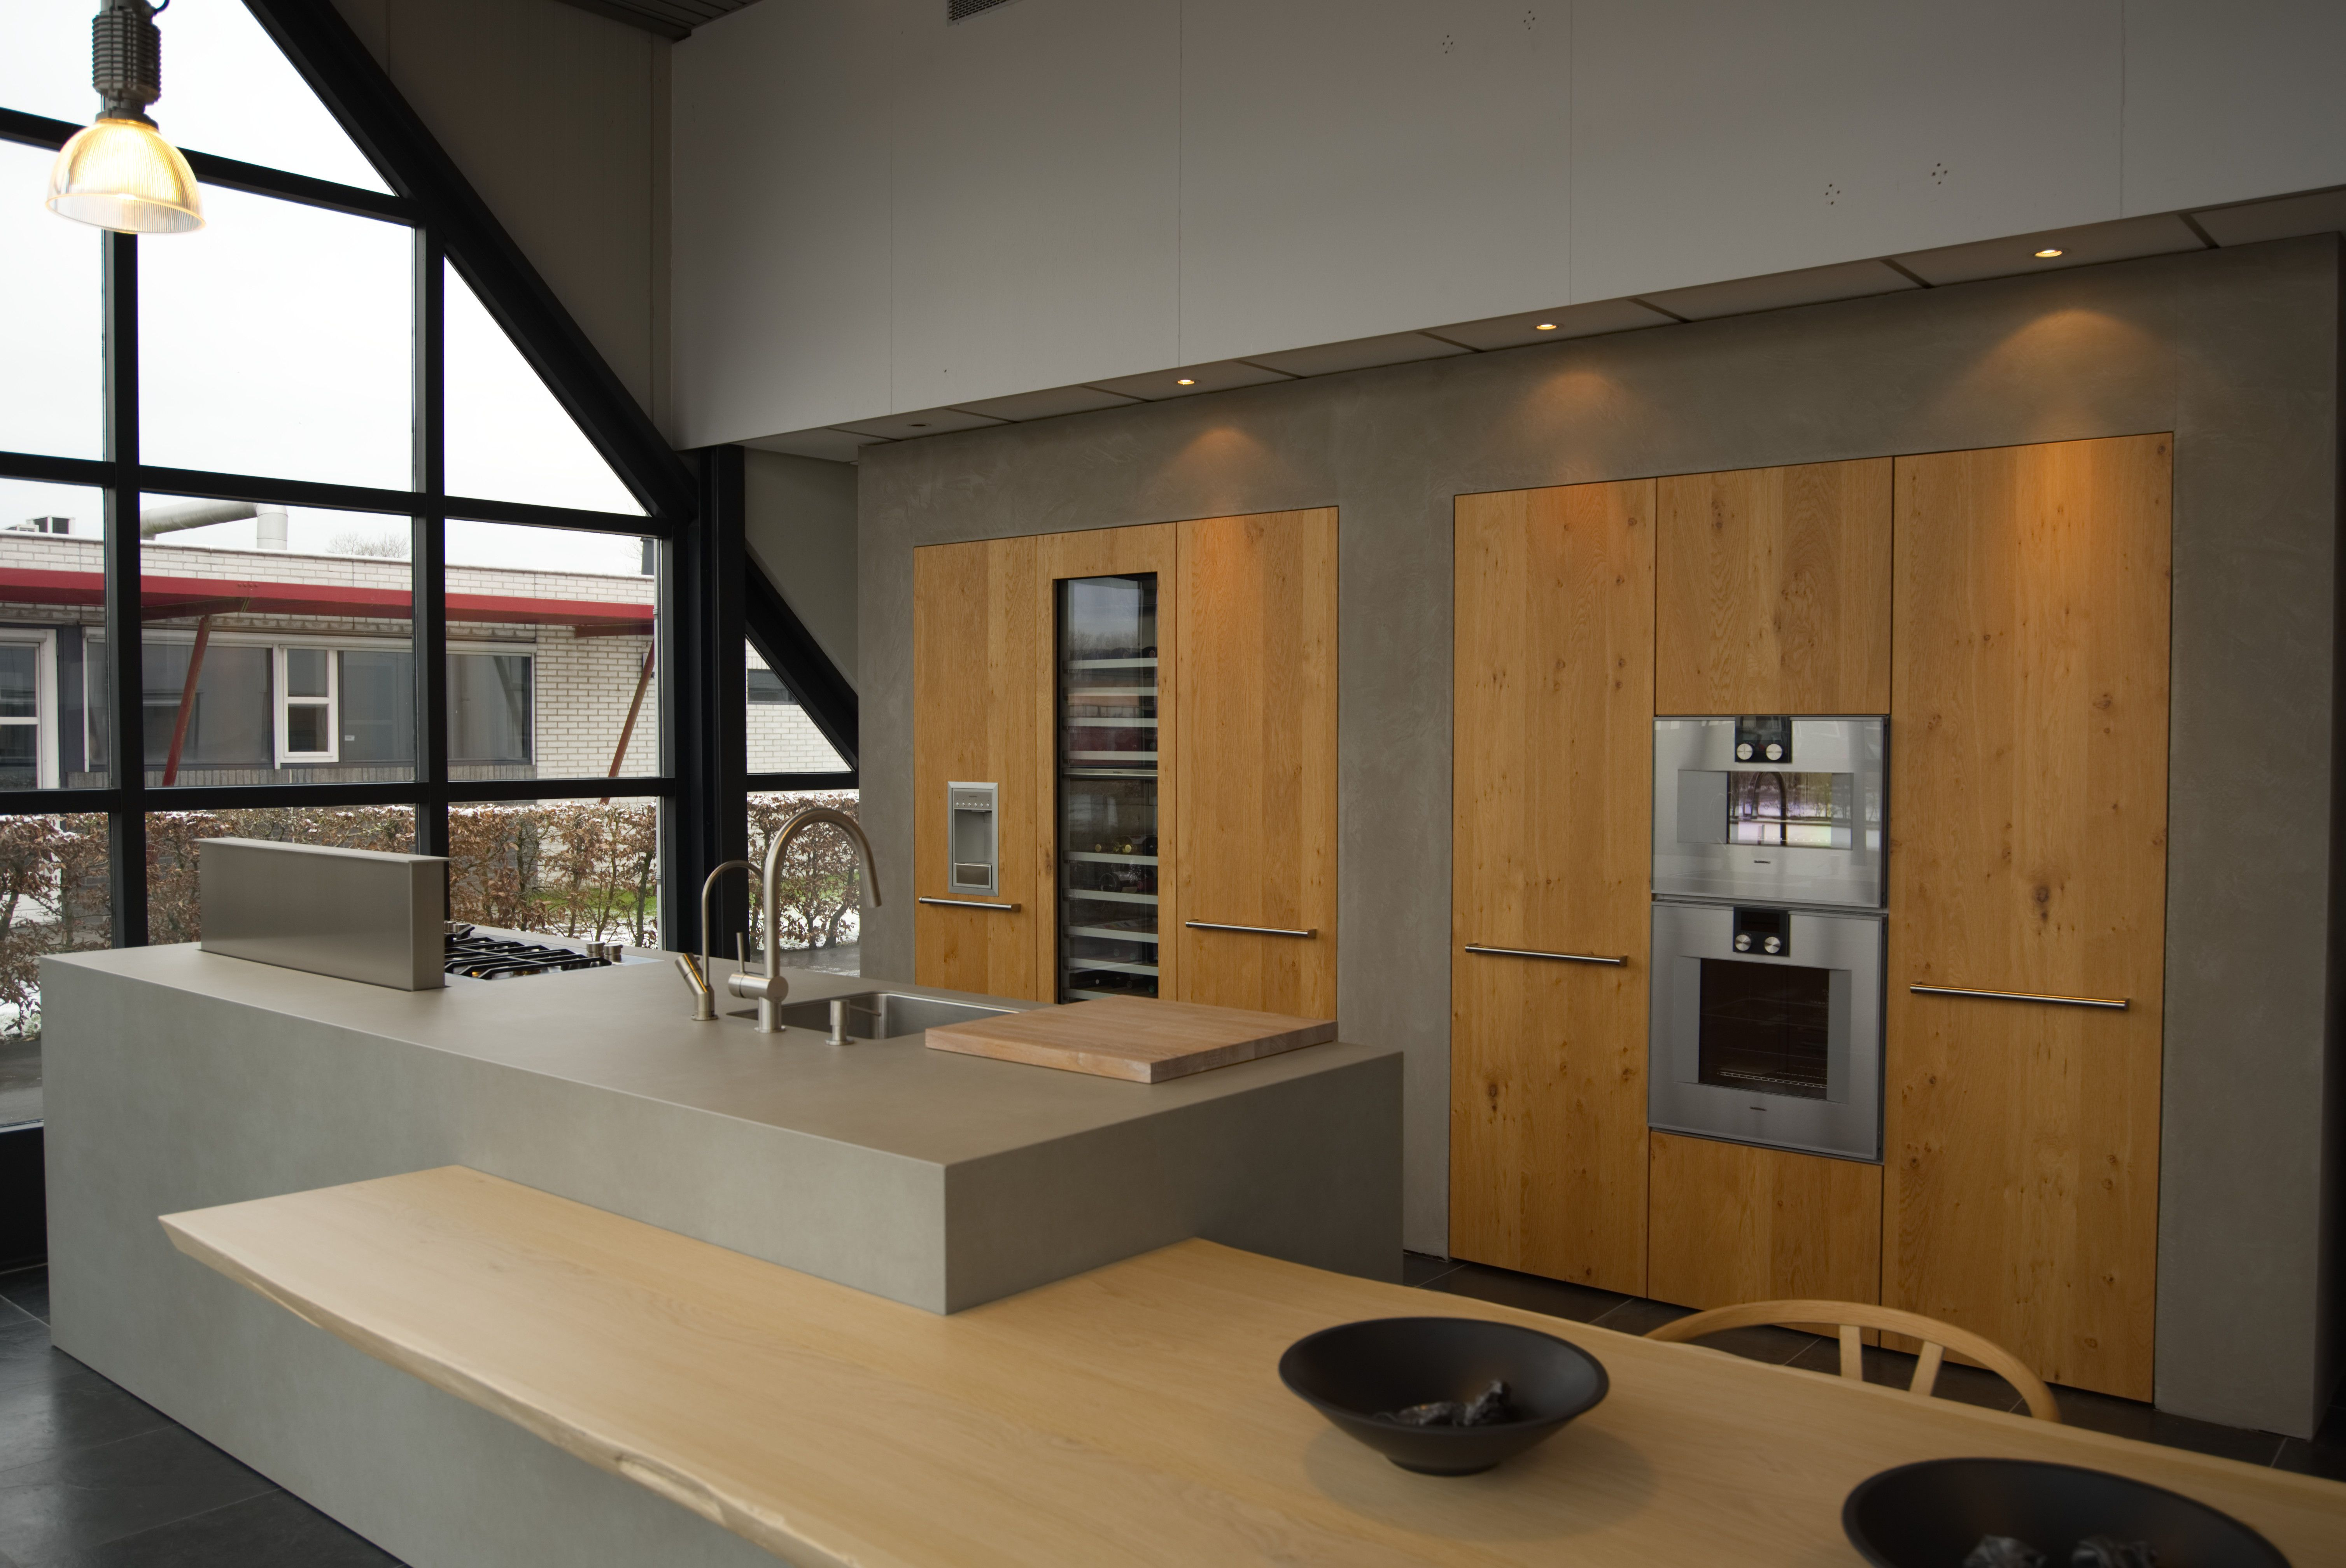 Bax Kitchen At Wijnand Keukens In Leek, The Netherlands.